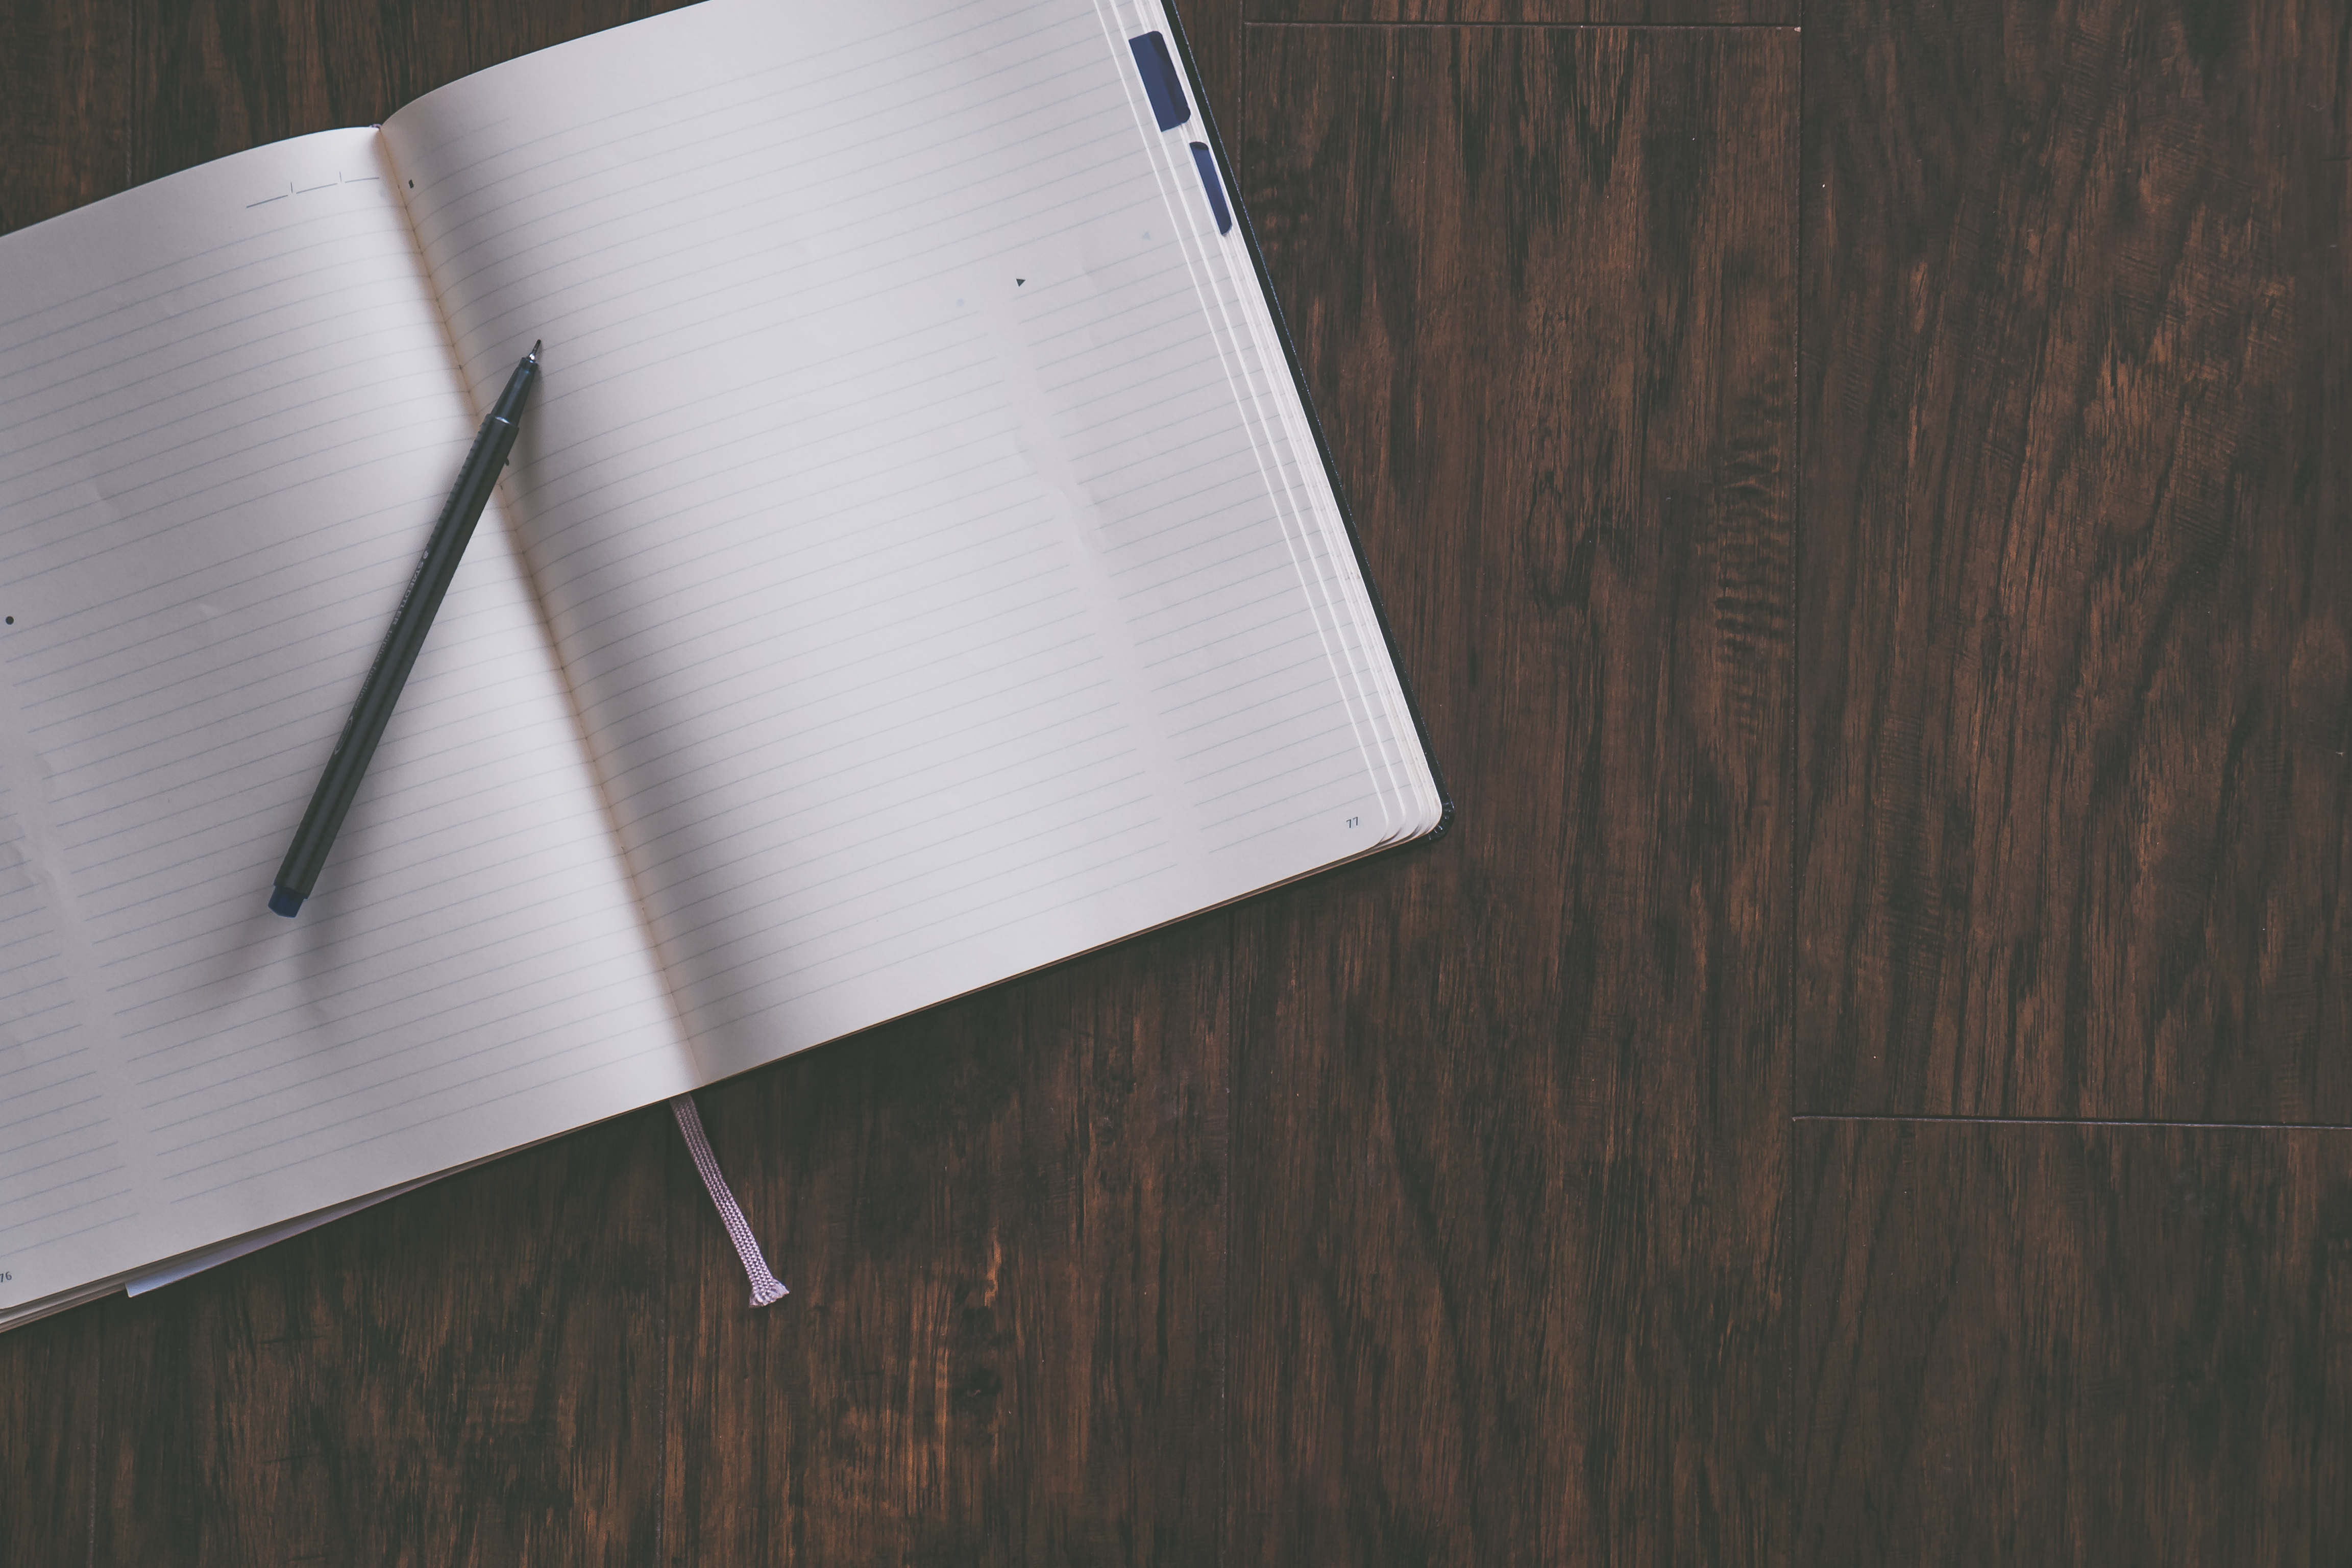 White Notebook and Pen